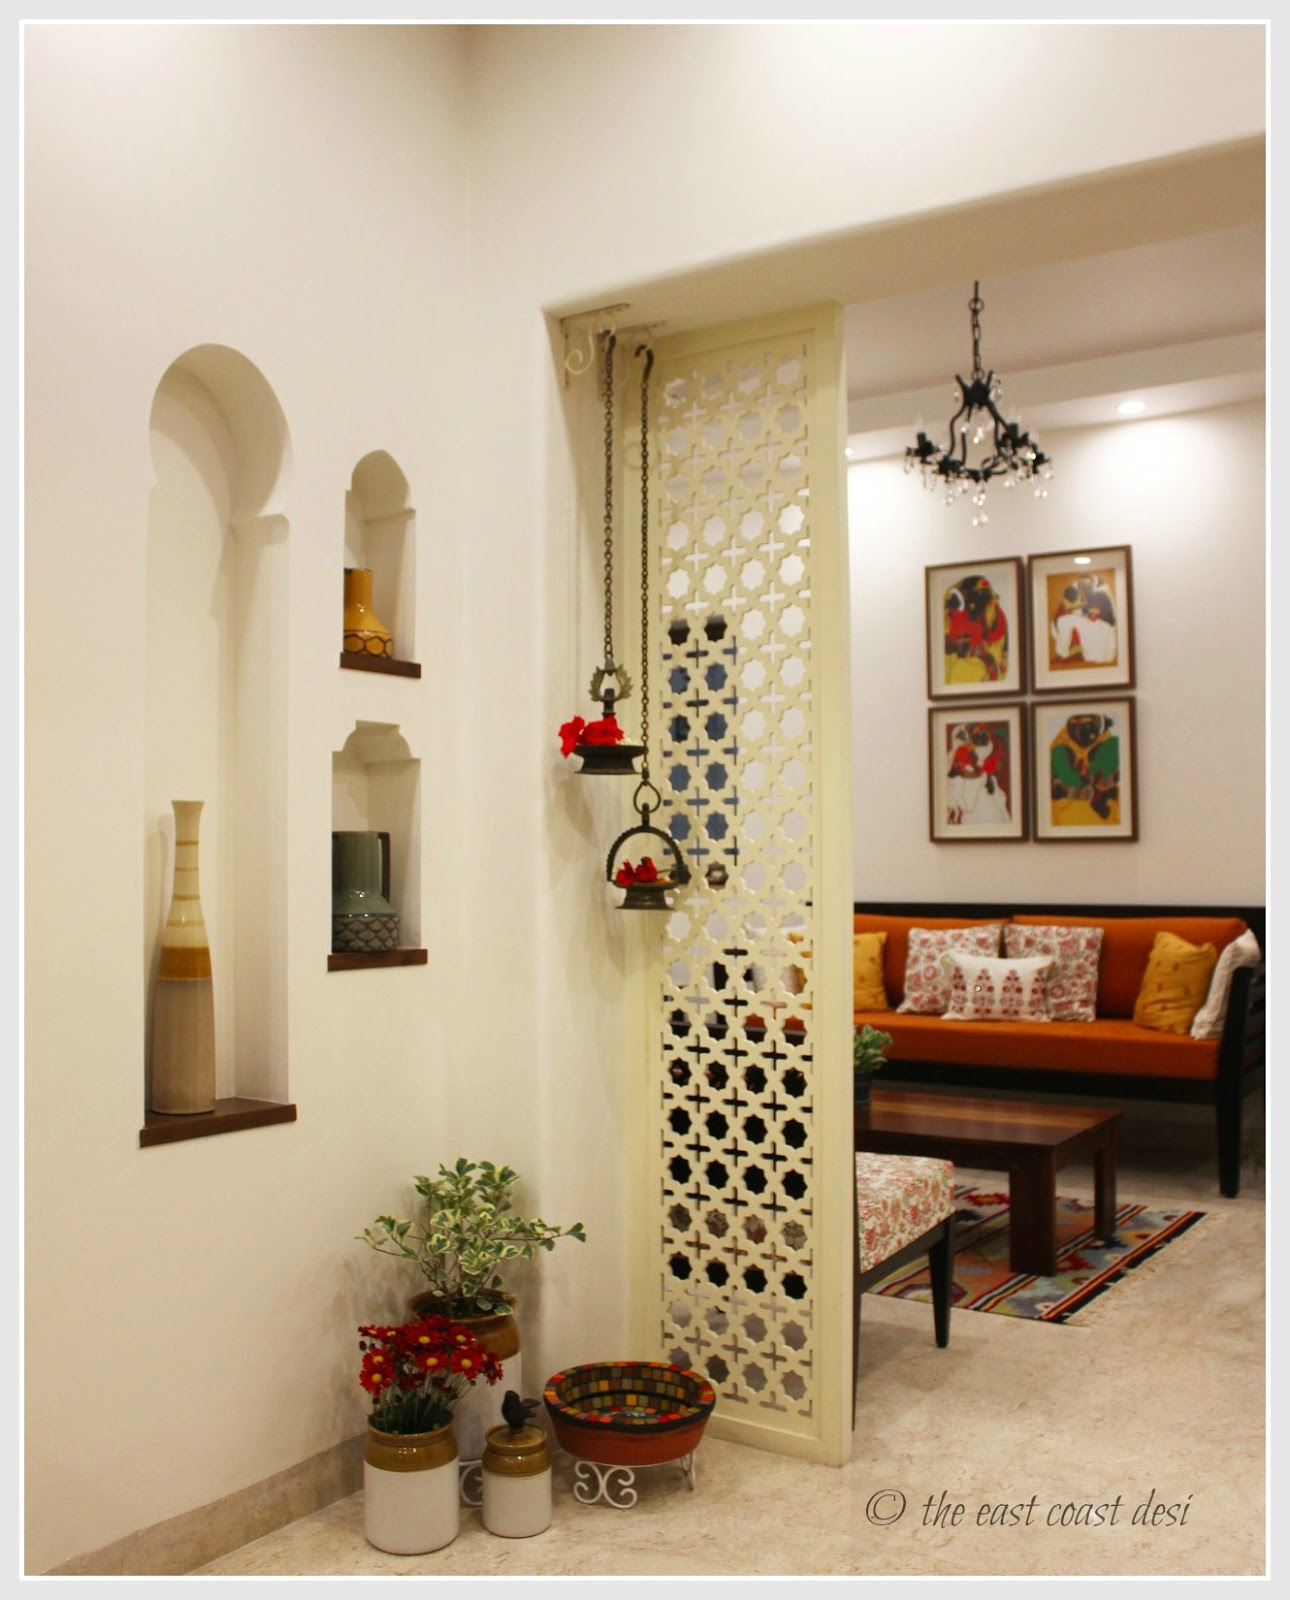 The East Coast Desi: Keeping It Elegantly Eclectic (Home Tour